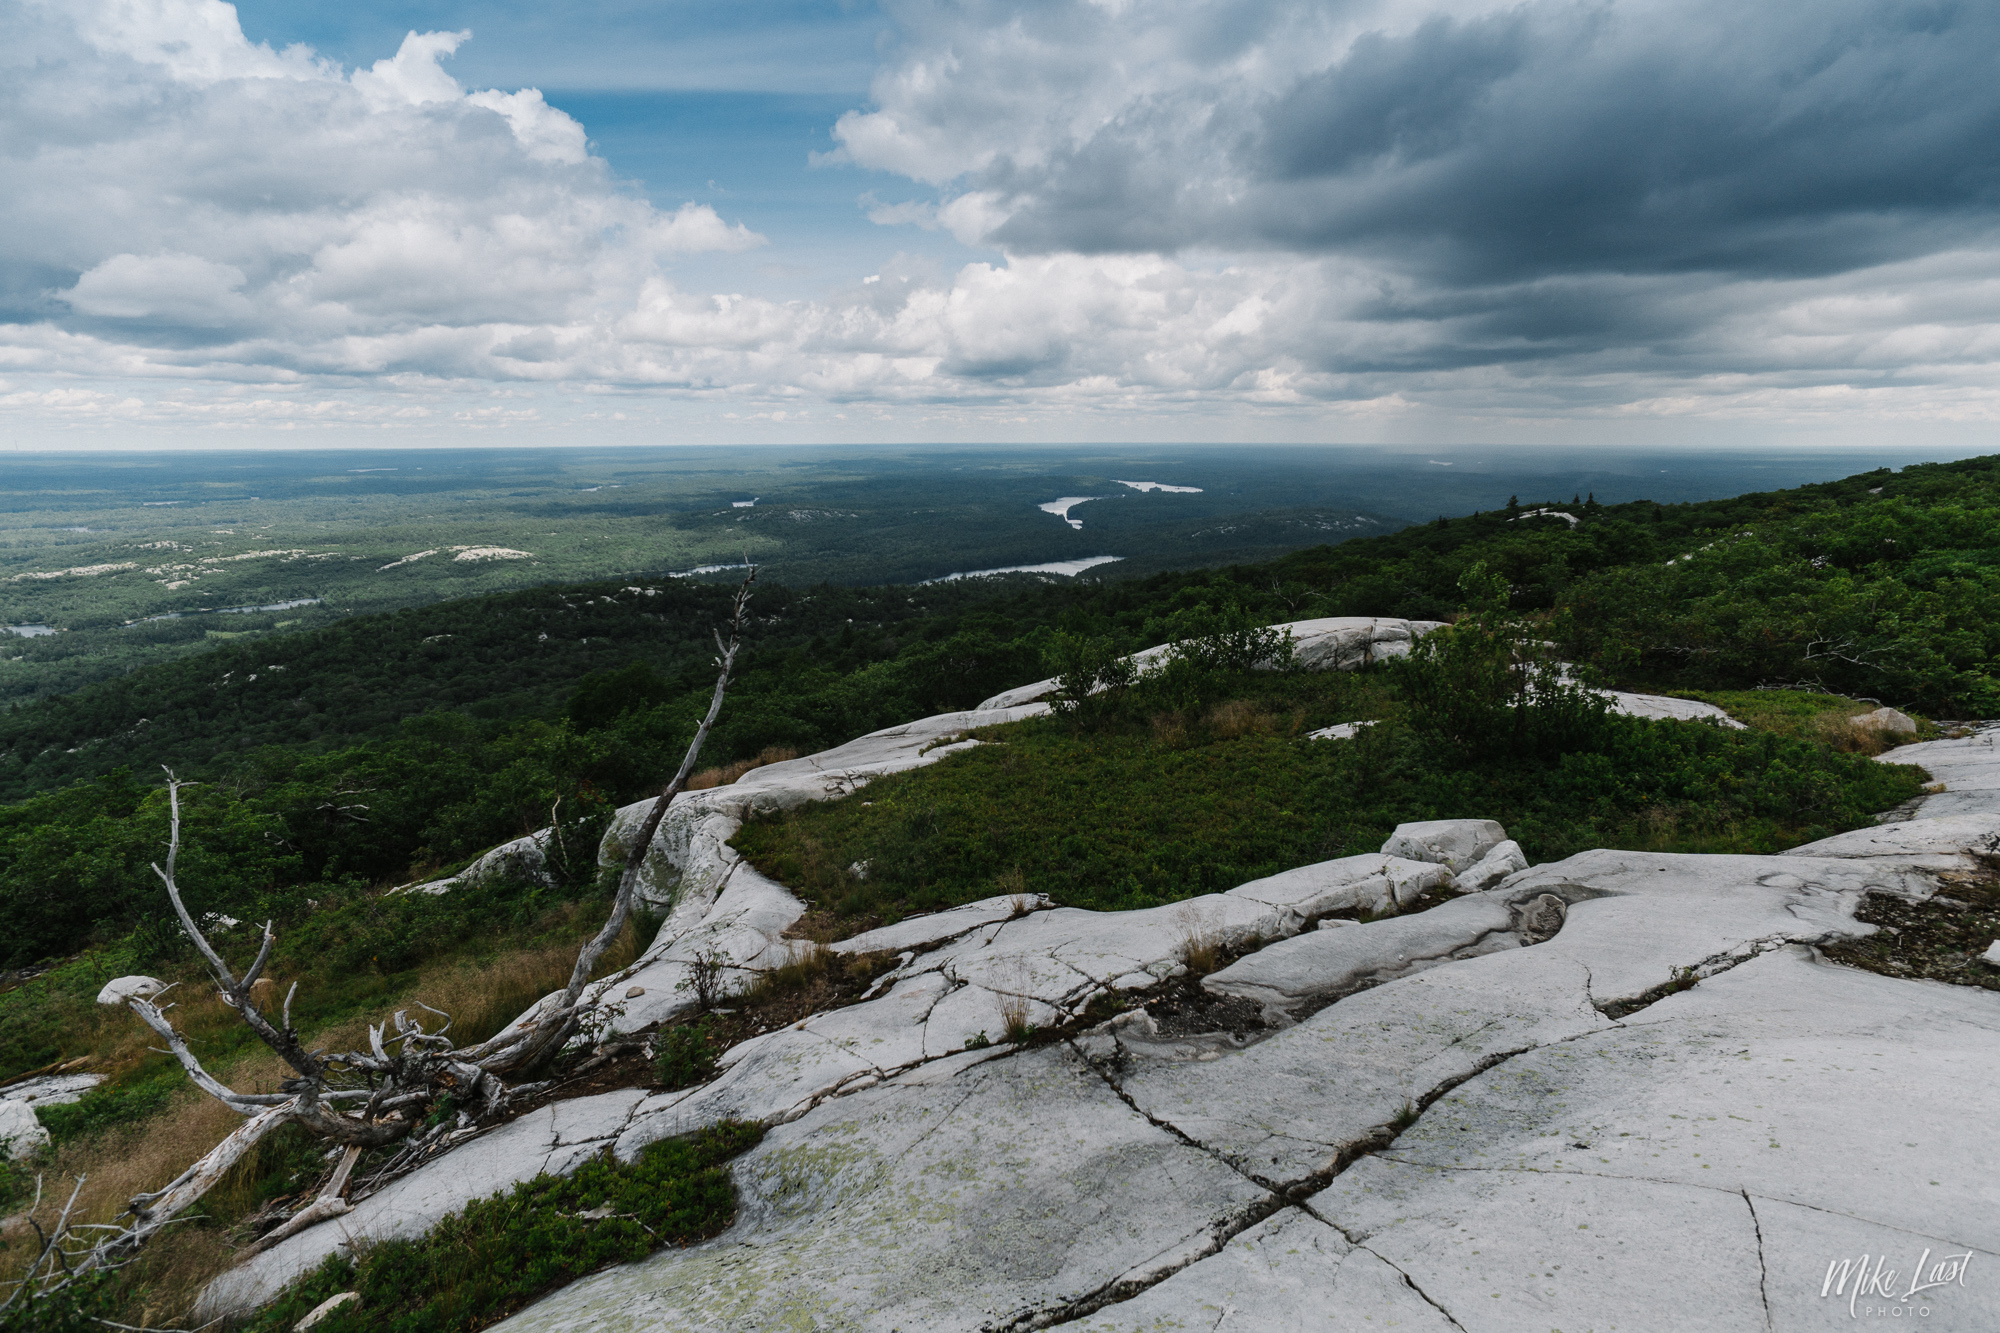 Summit of Silver Peak - Killarney Provincial Park